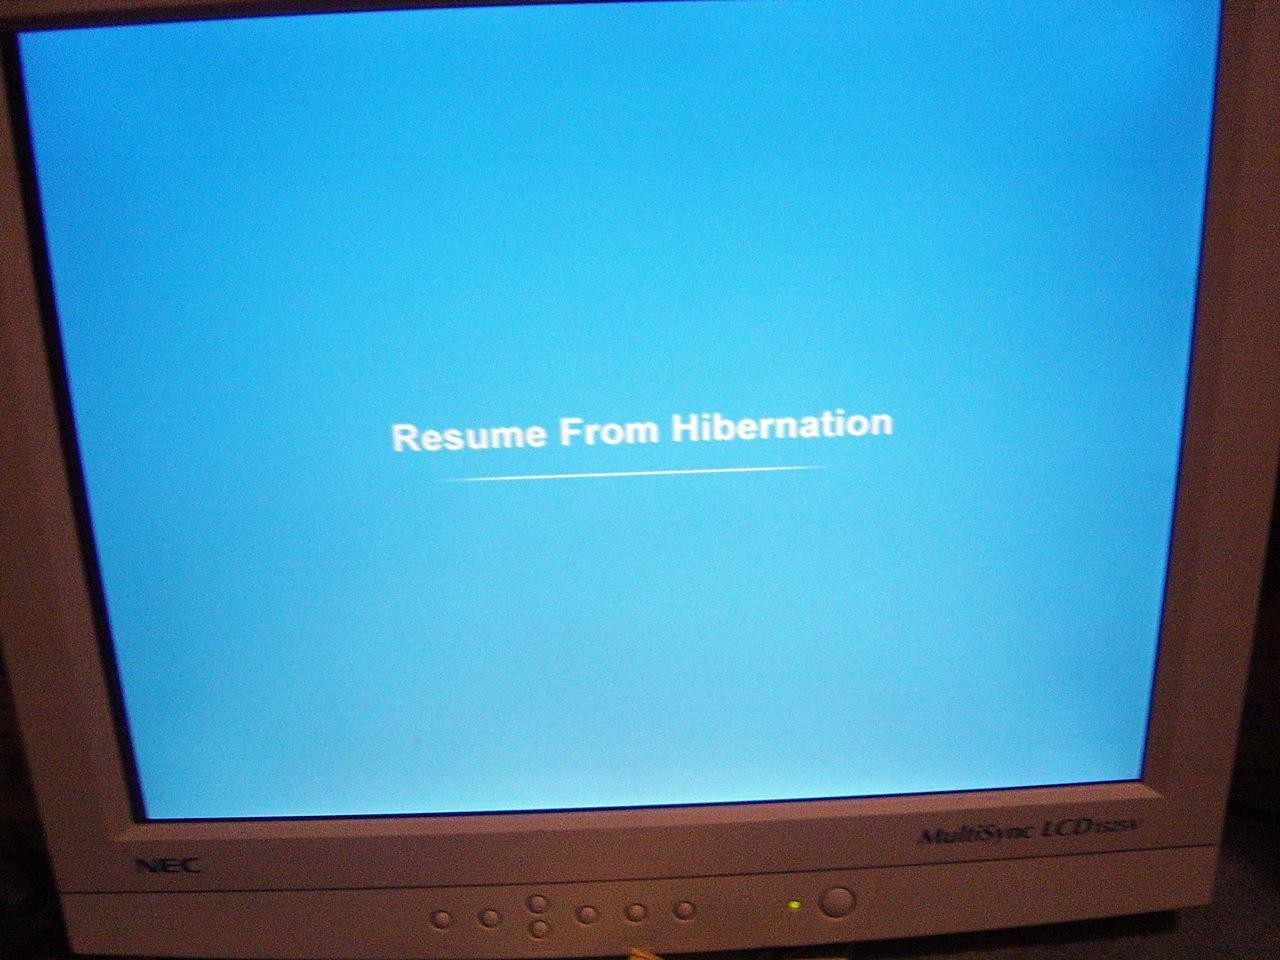 Resume from hibernation